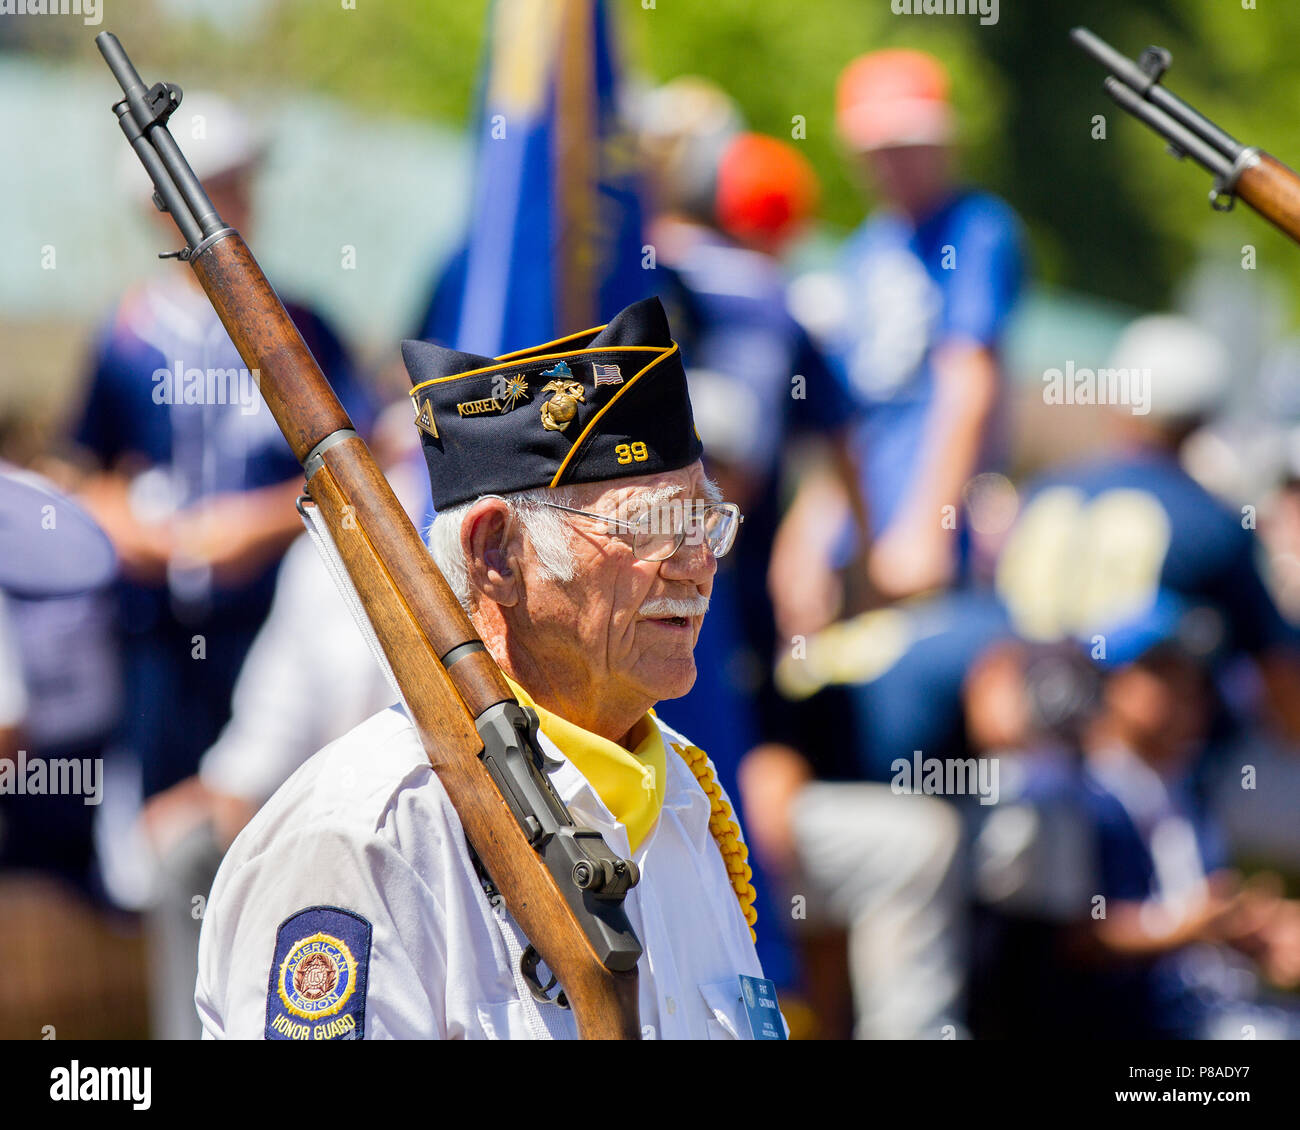 May The 4th Be With You Sacramento: American Legion Parade Stock Photos & American Legion